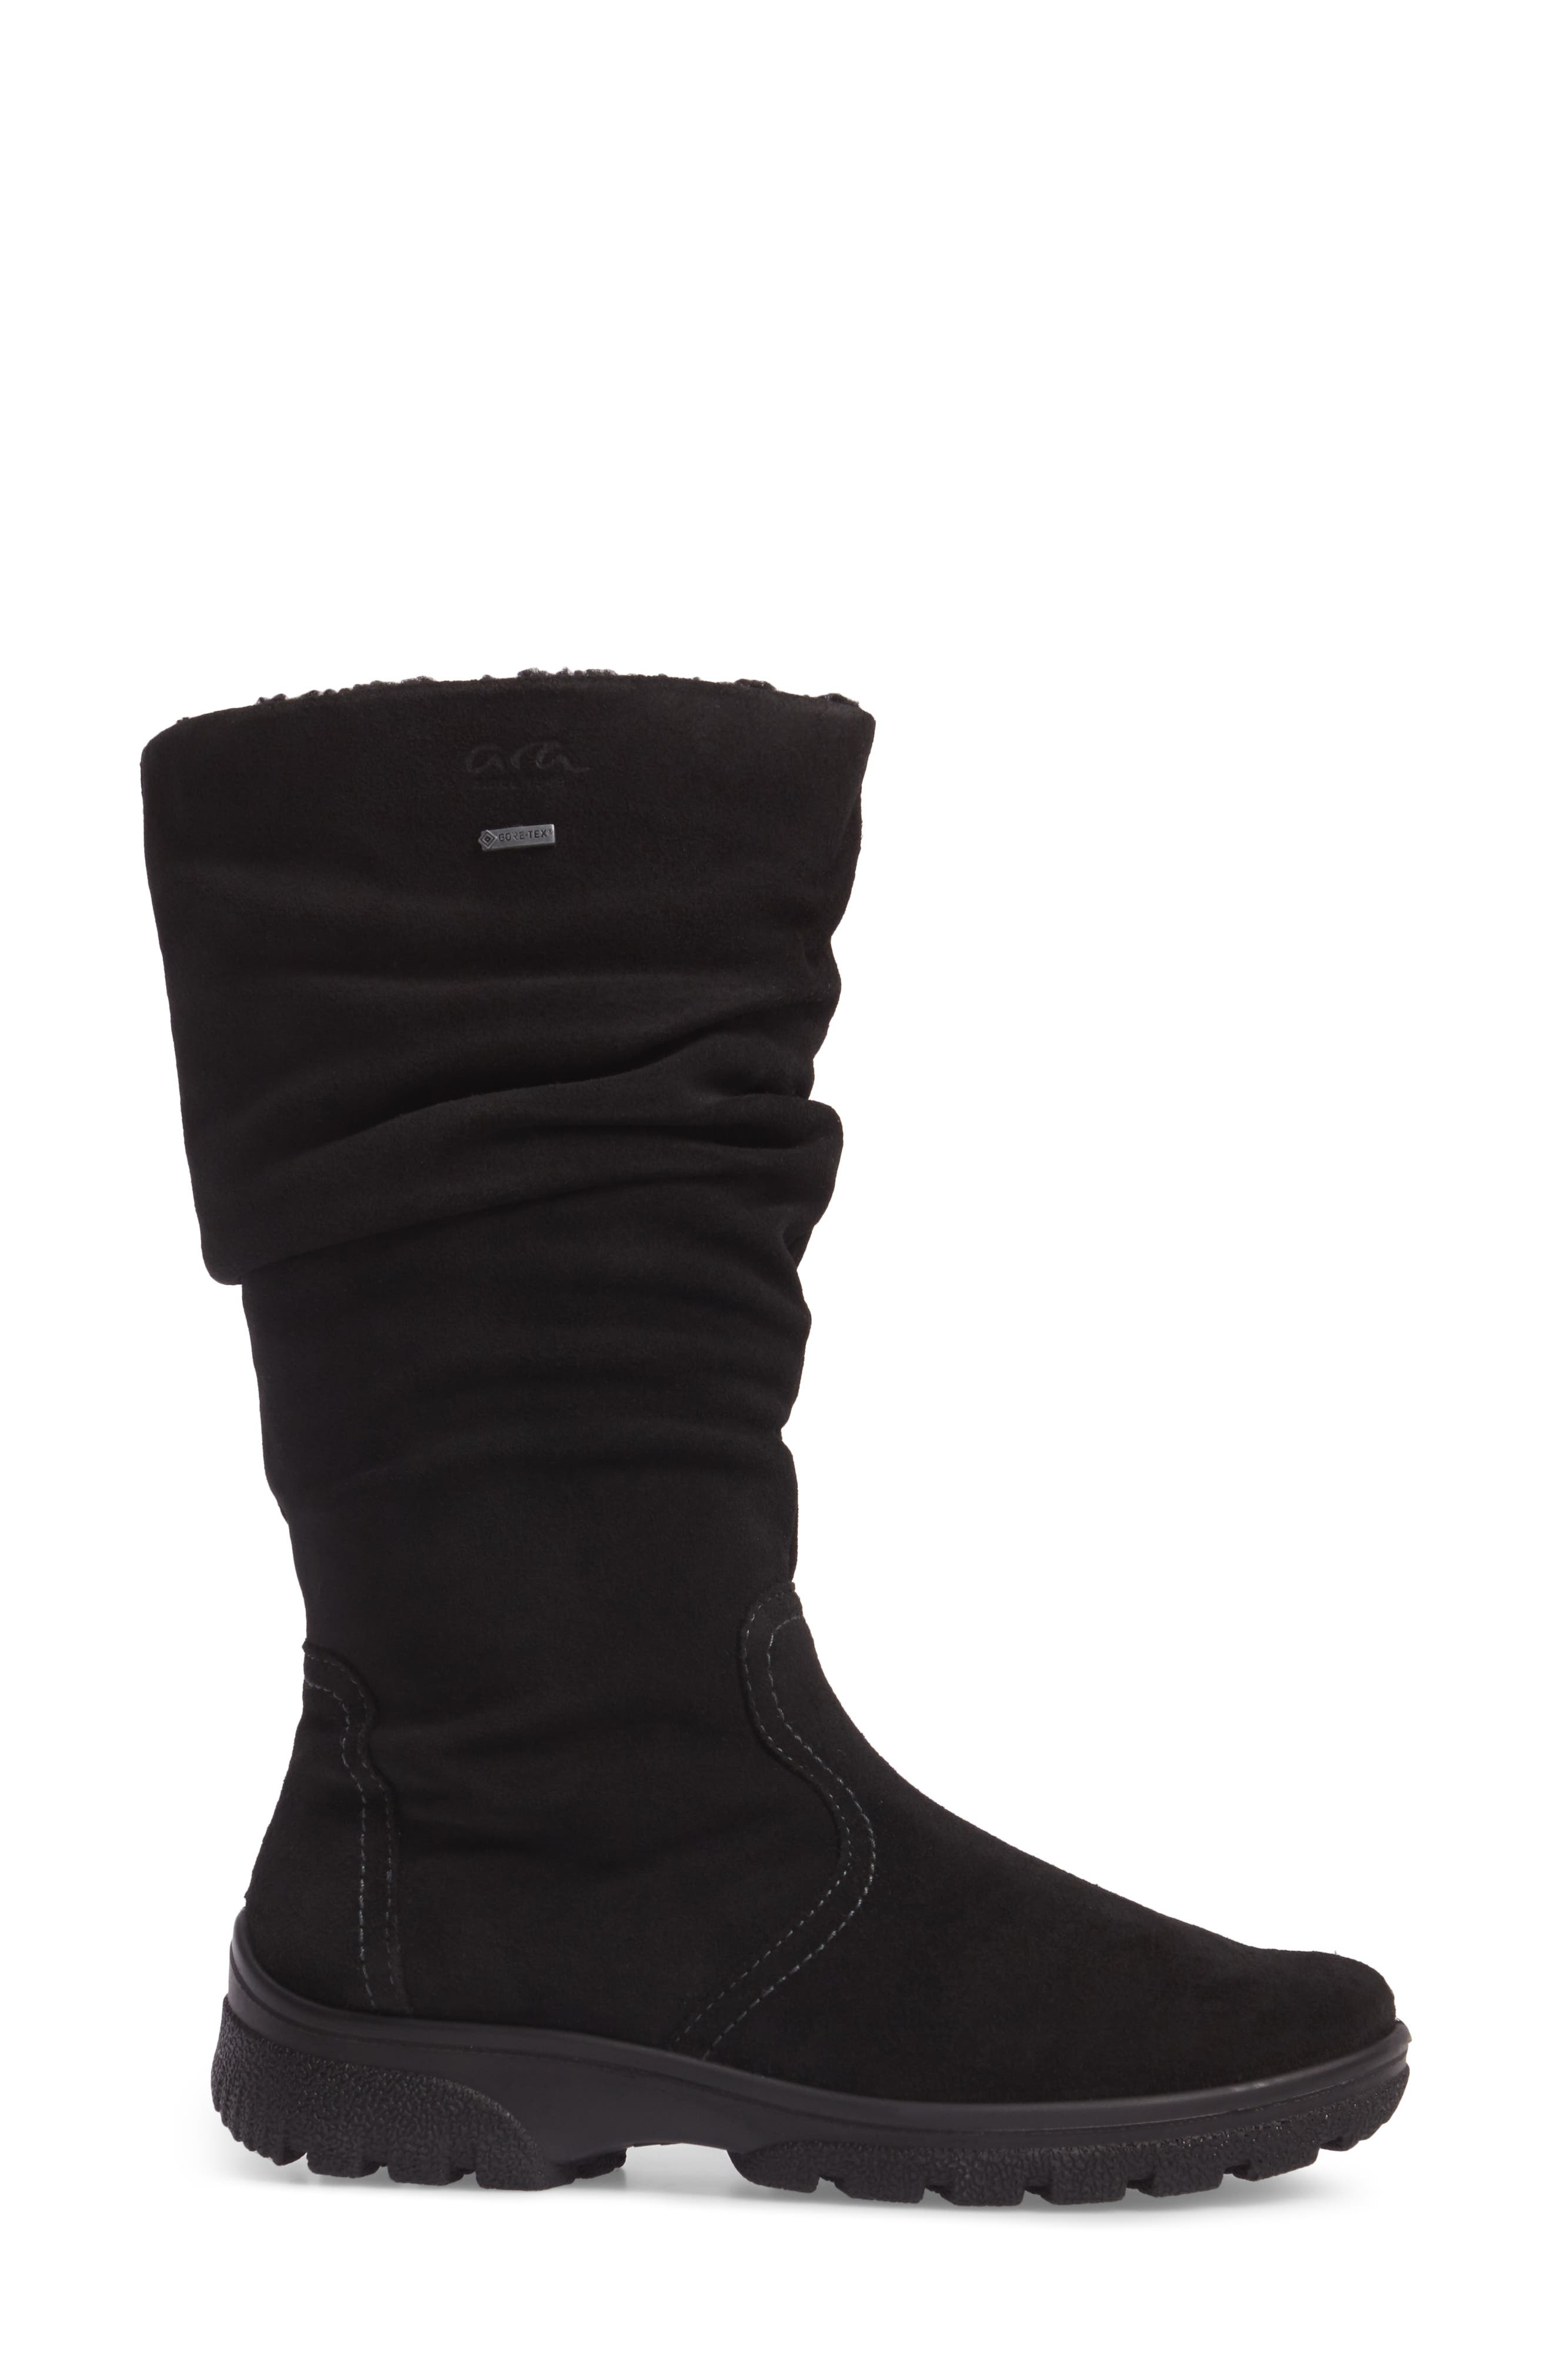 Sydney Waterproof Gore-Tex<sup>®</sup> Boot,                             Alternate thumbnail 3, color,                             001